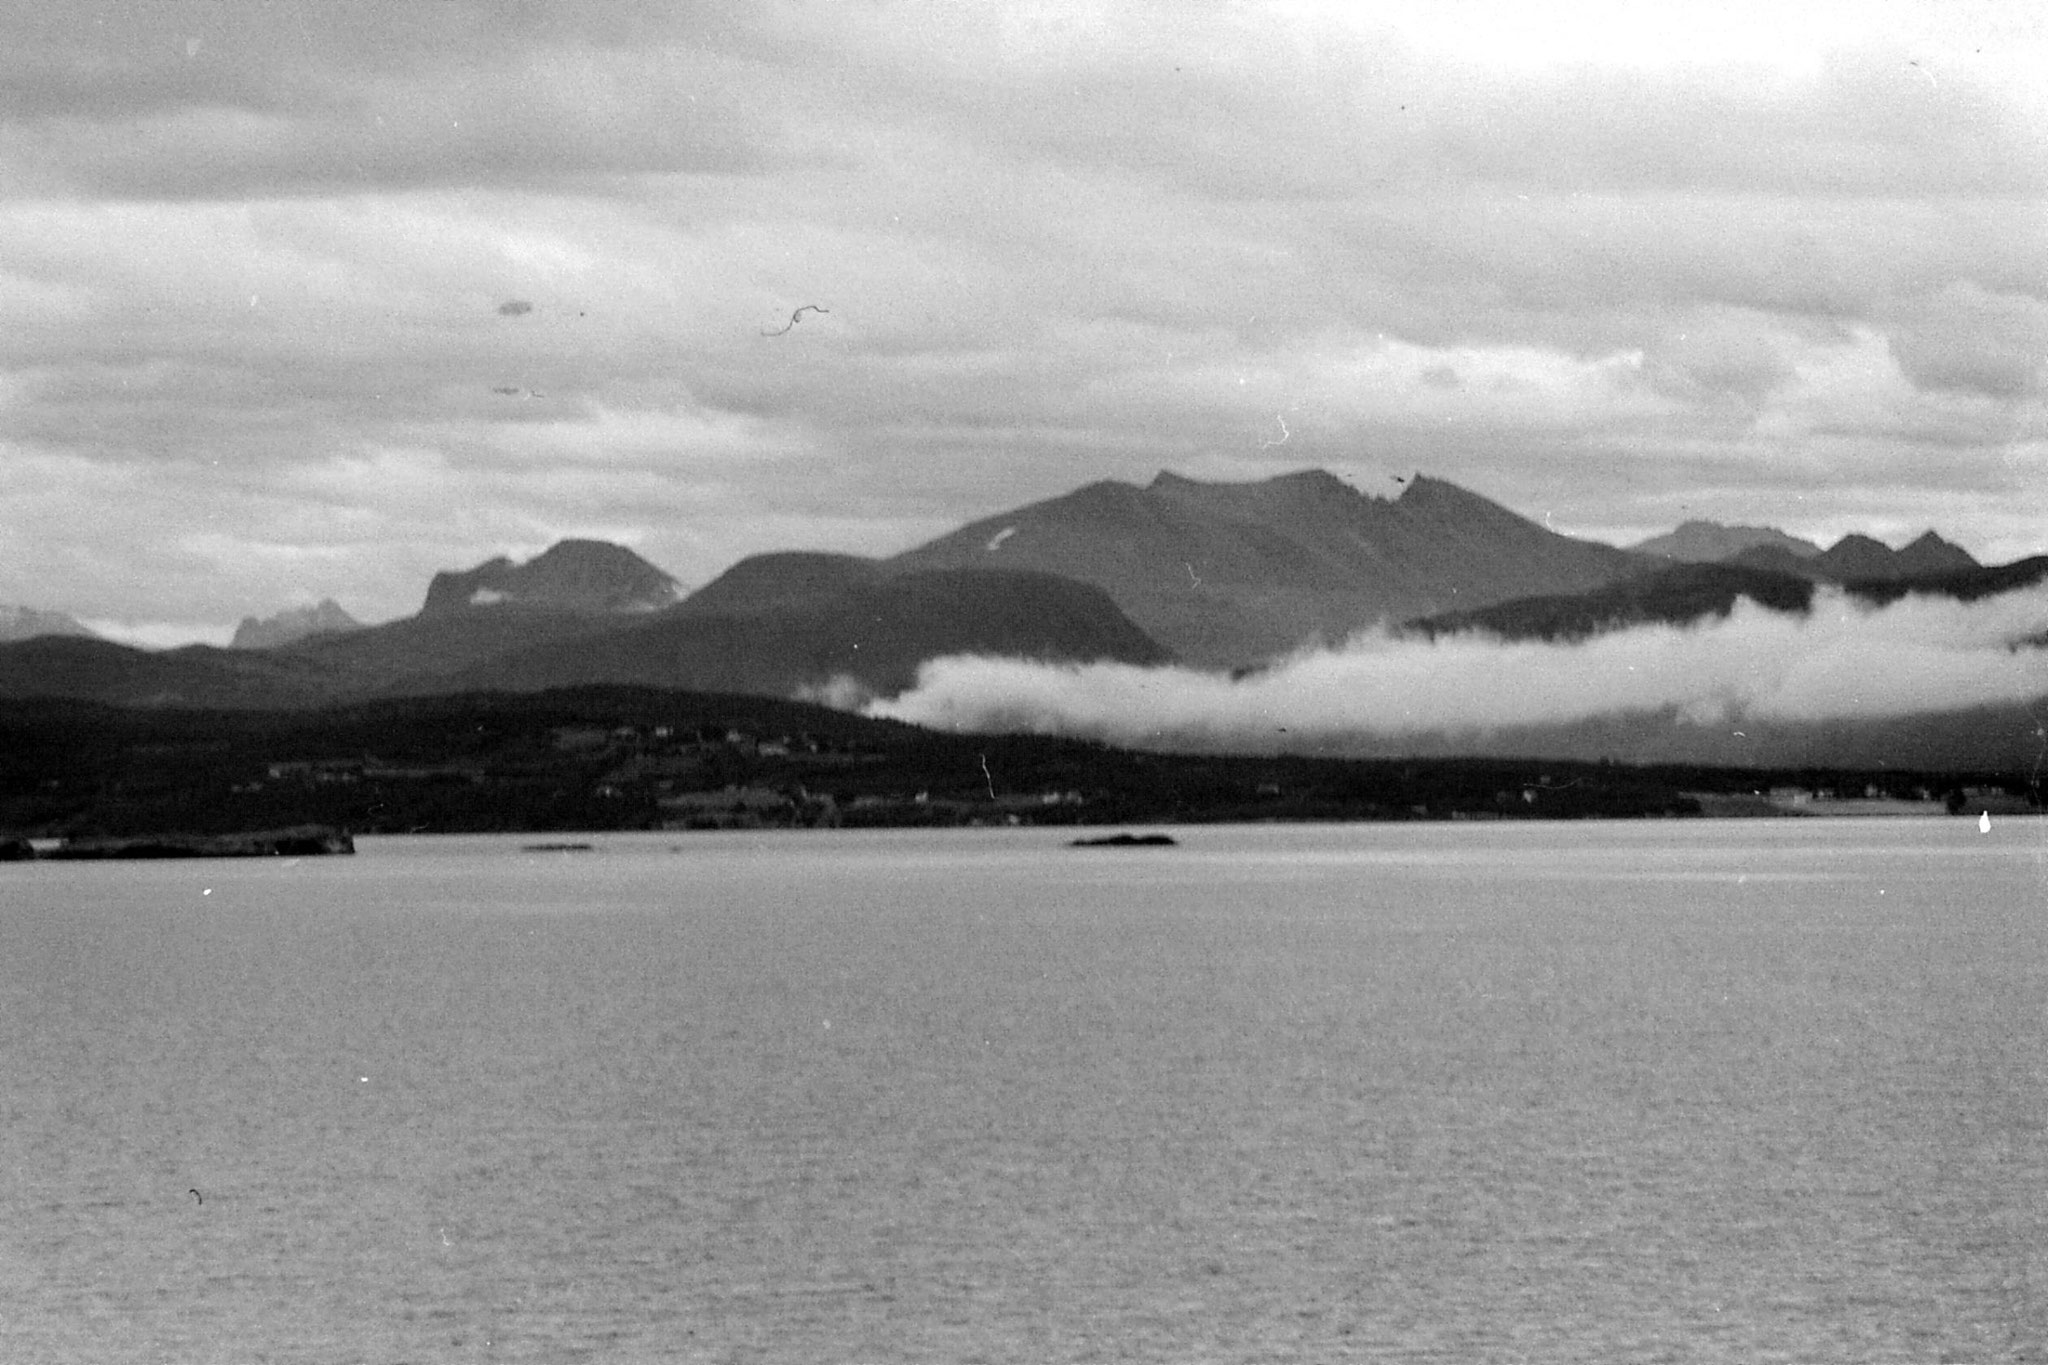 34: Between Alesund and Molde, looking toward Romsdal Mountains